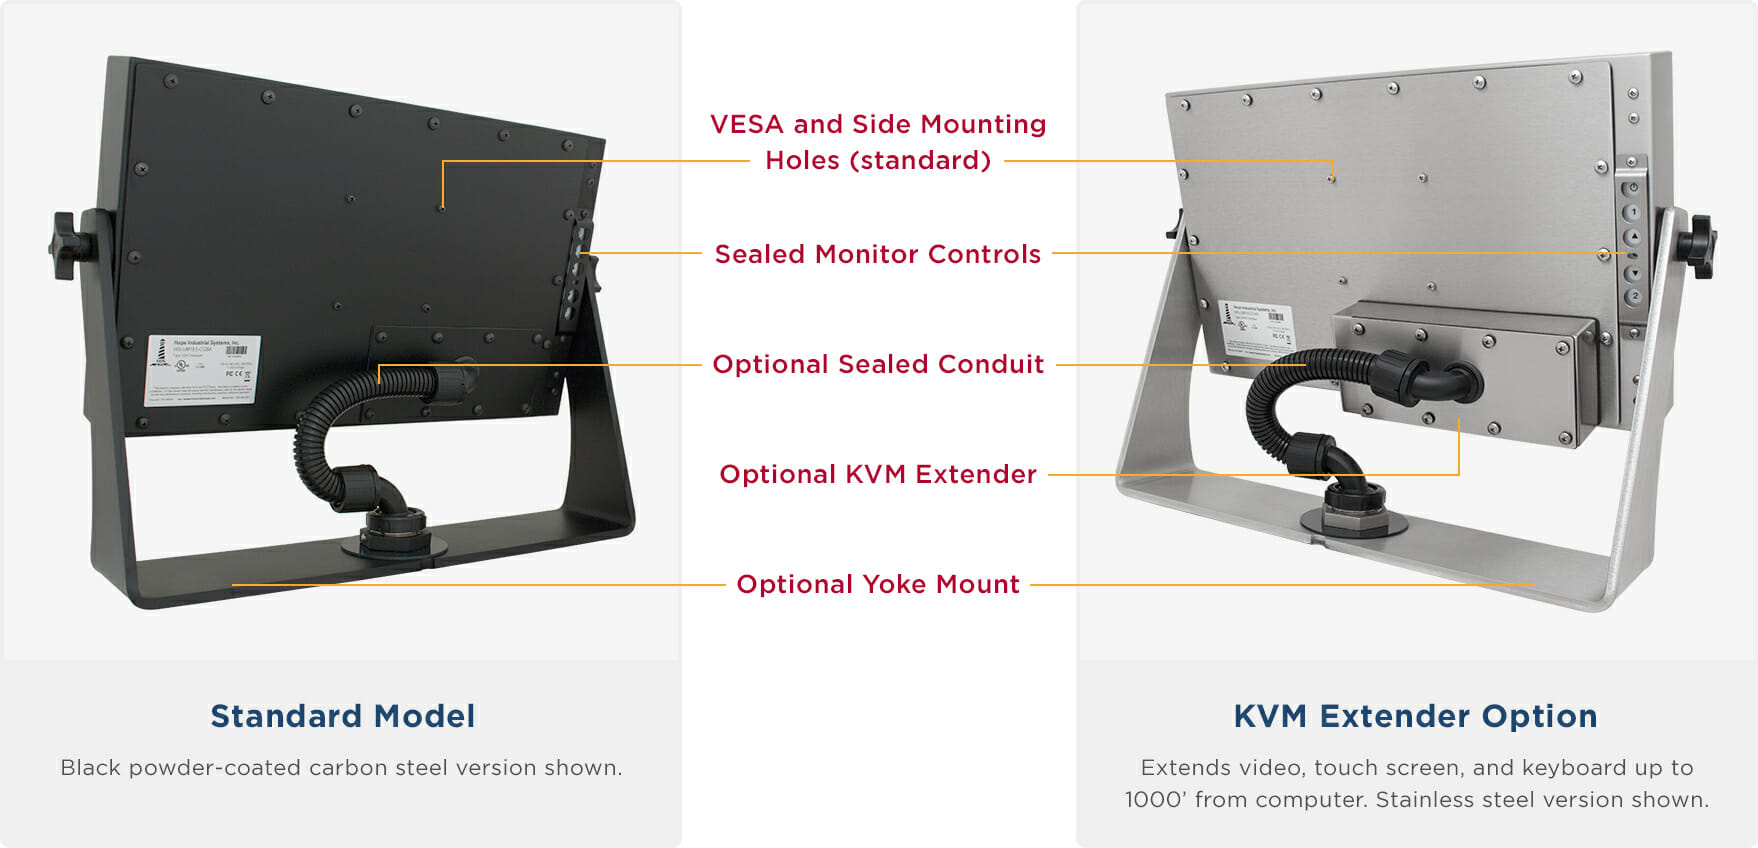 """Rear views of NEMA 4/4X Rated Widescreen 19.5"""" Universal Mount Monitors showing Industrial Enclosure features and options"""